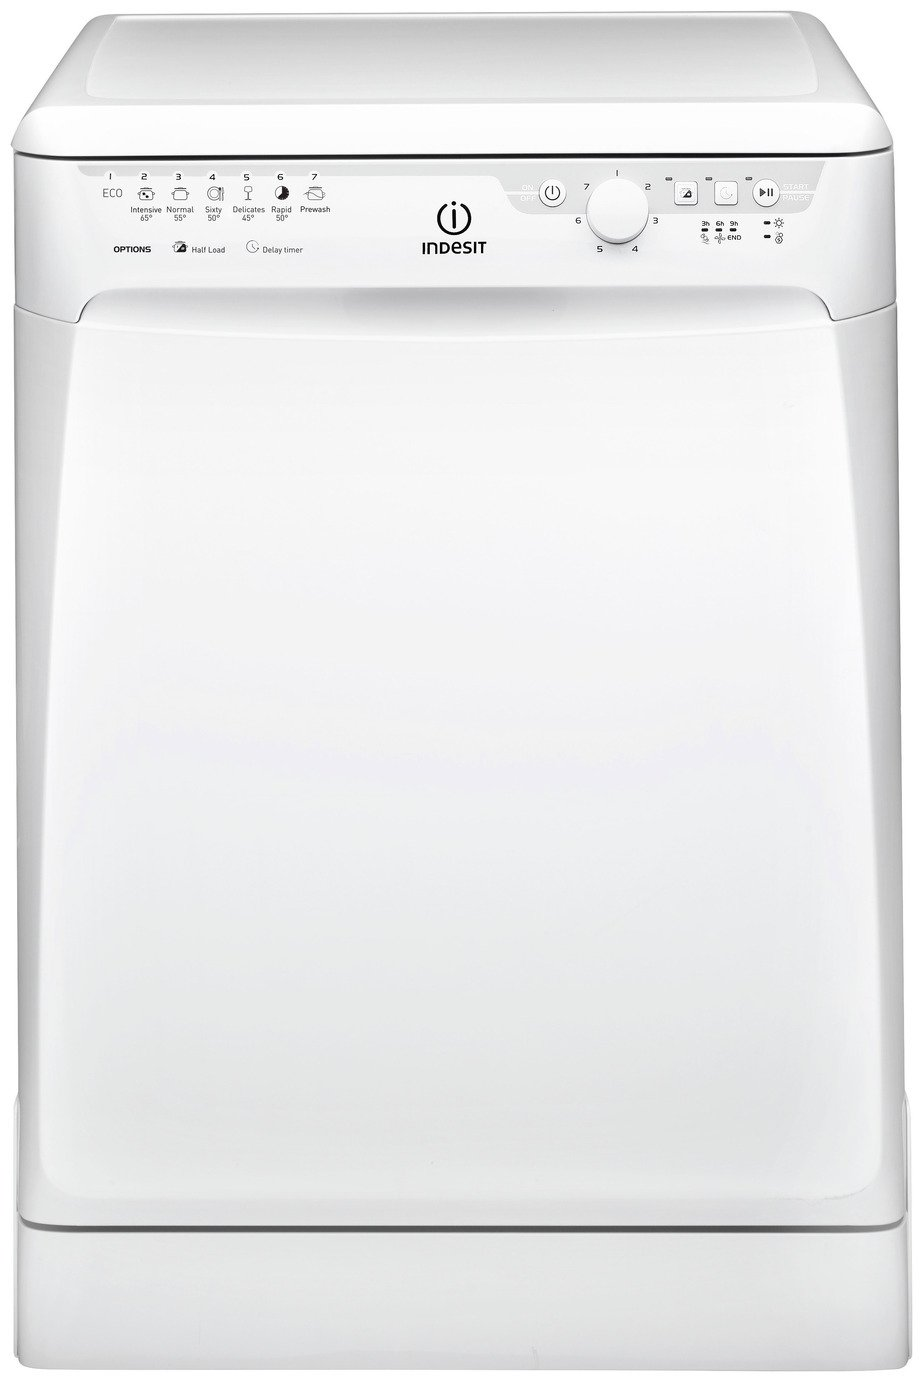 Indesit DFP27B10 Full Size Dishwasher - White